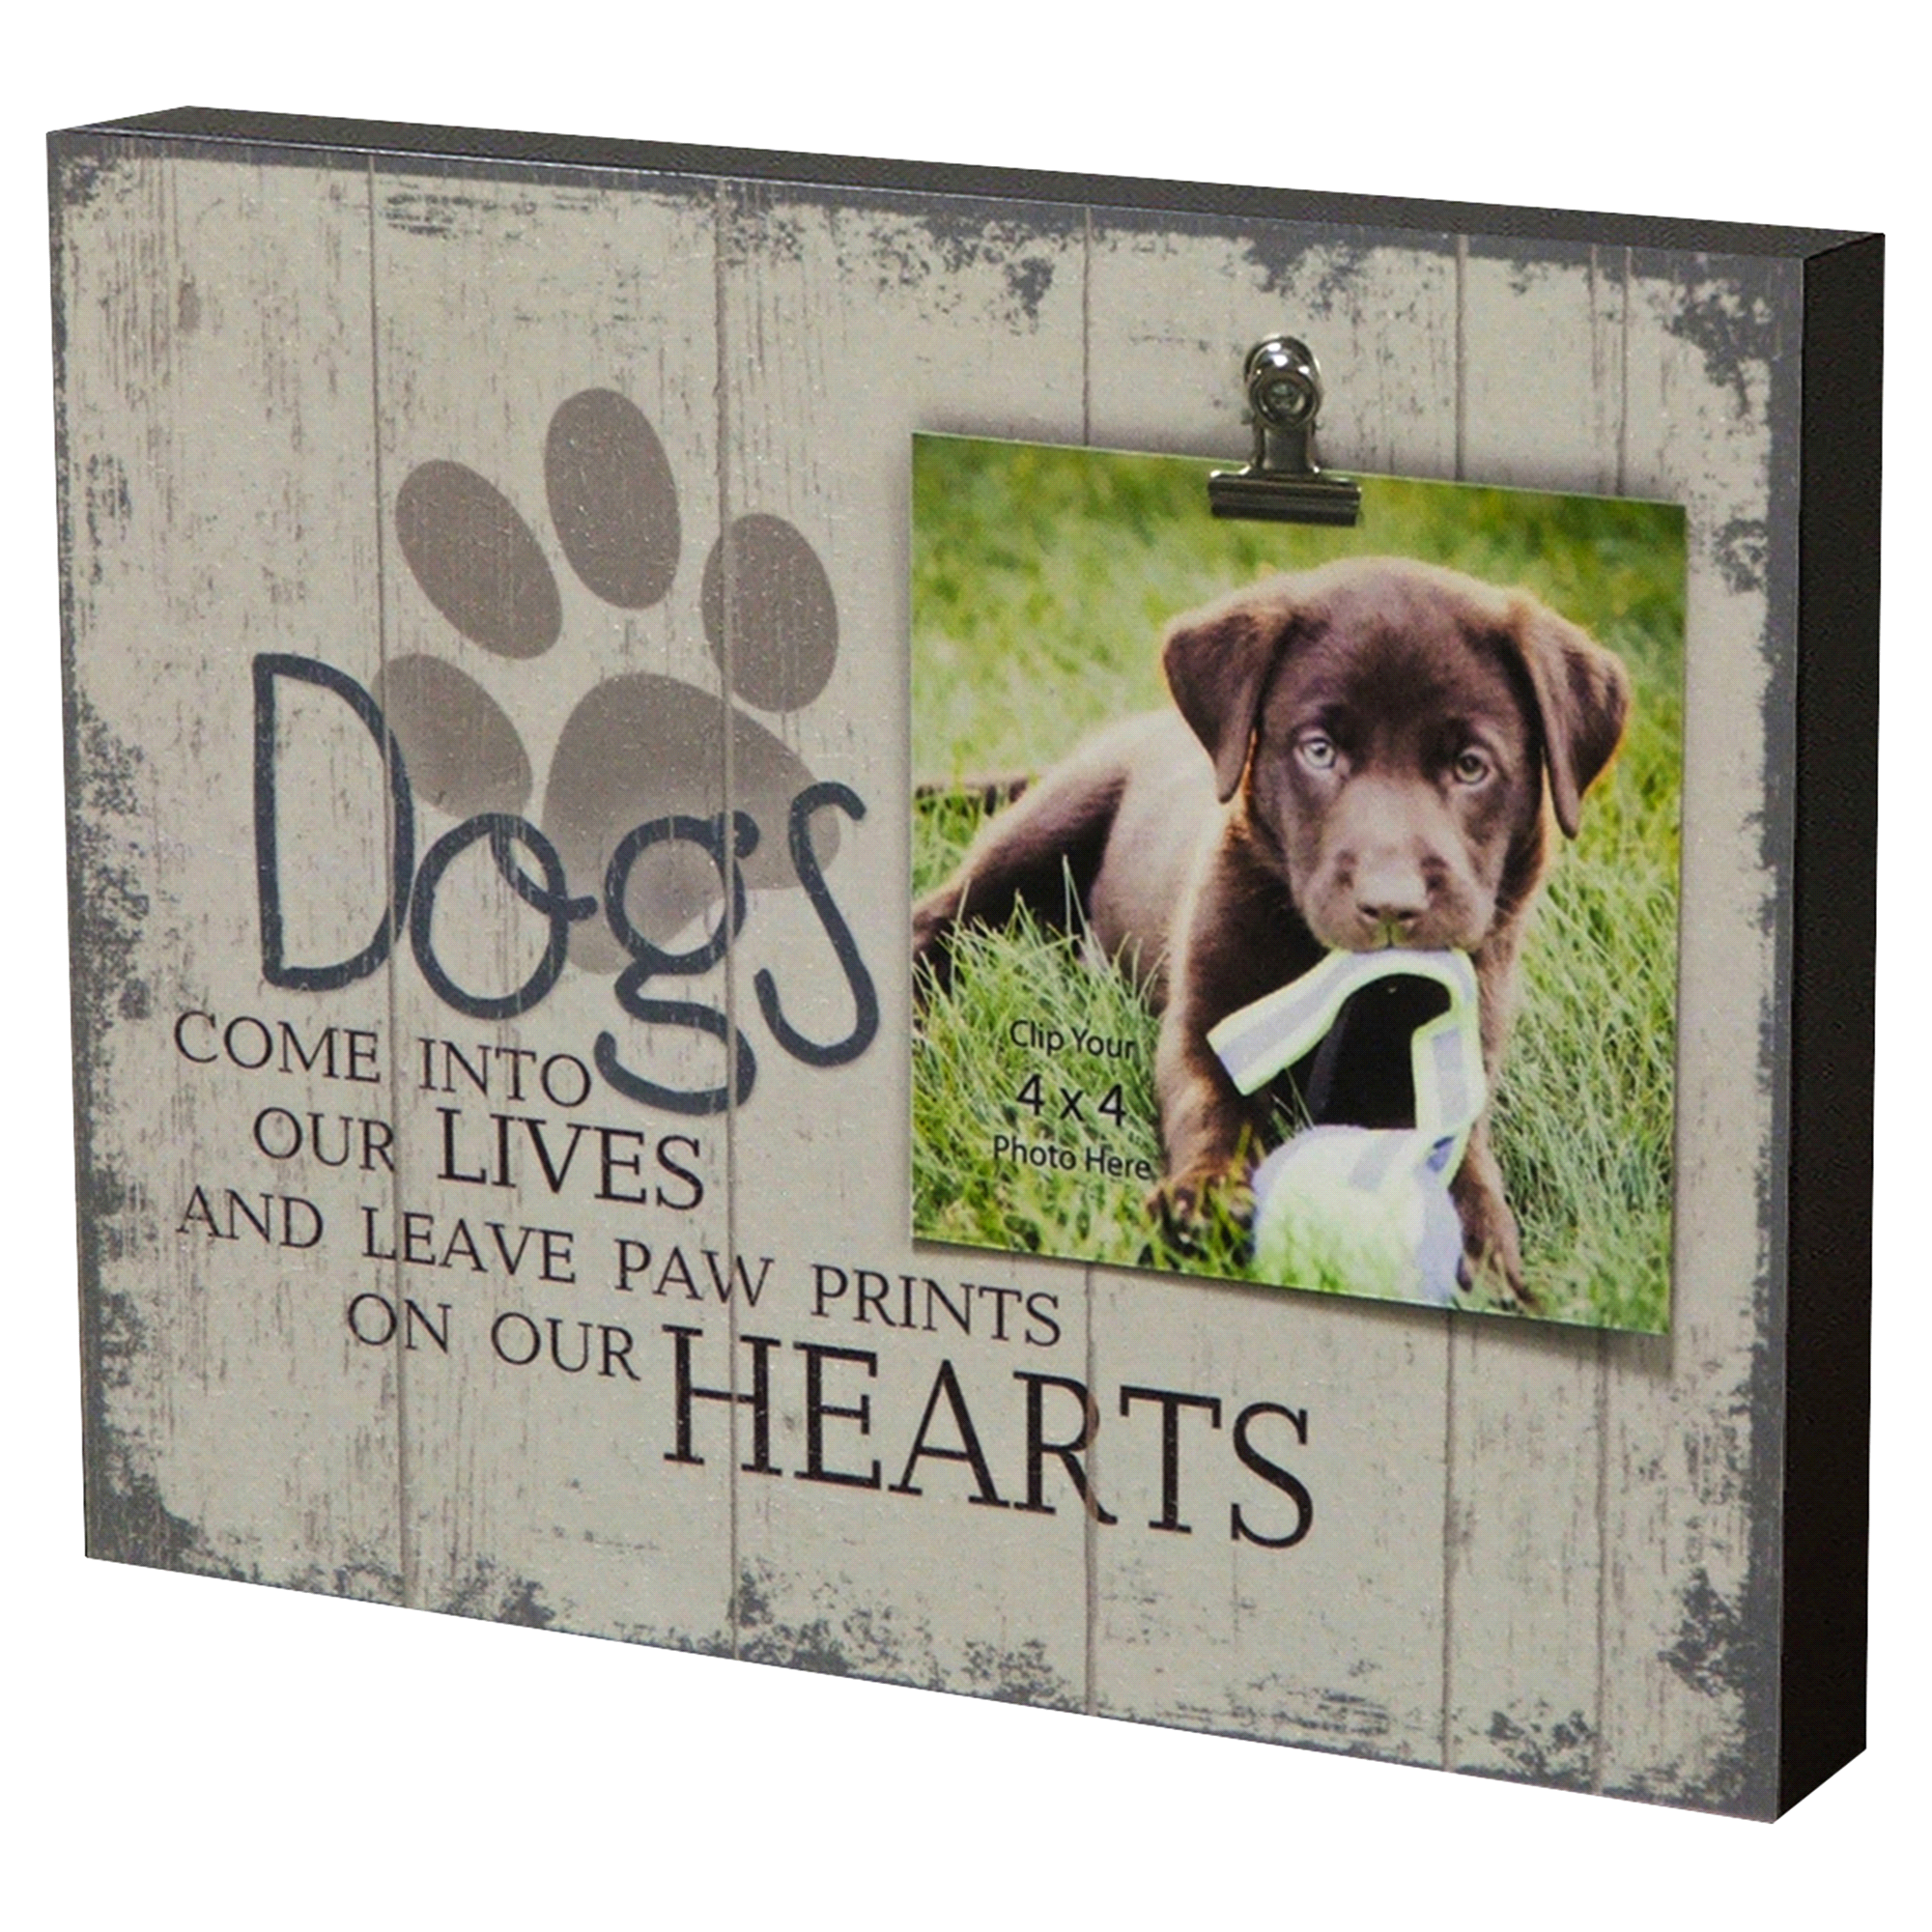 Creative Products Dog Box Frame 8 x 10 | Meijer.com